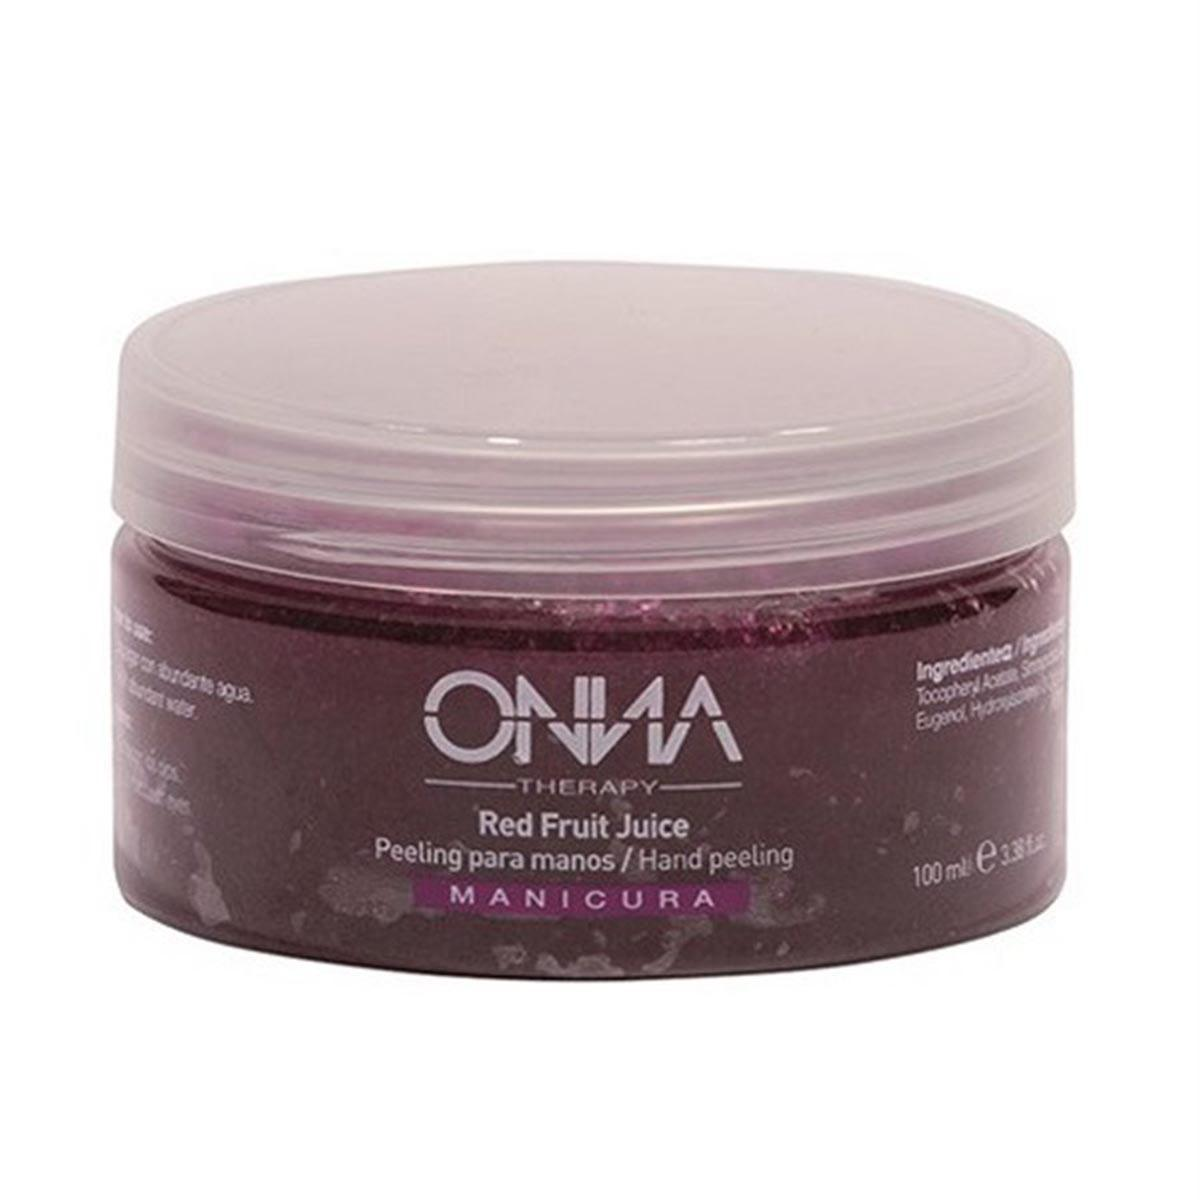 Onna therapy Red Fruit Juice Peeling Hands 100 ml